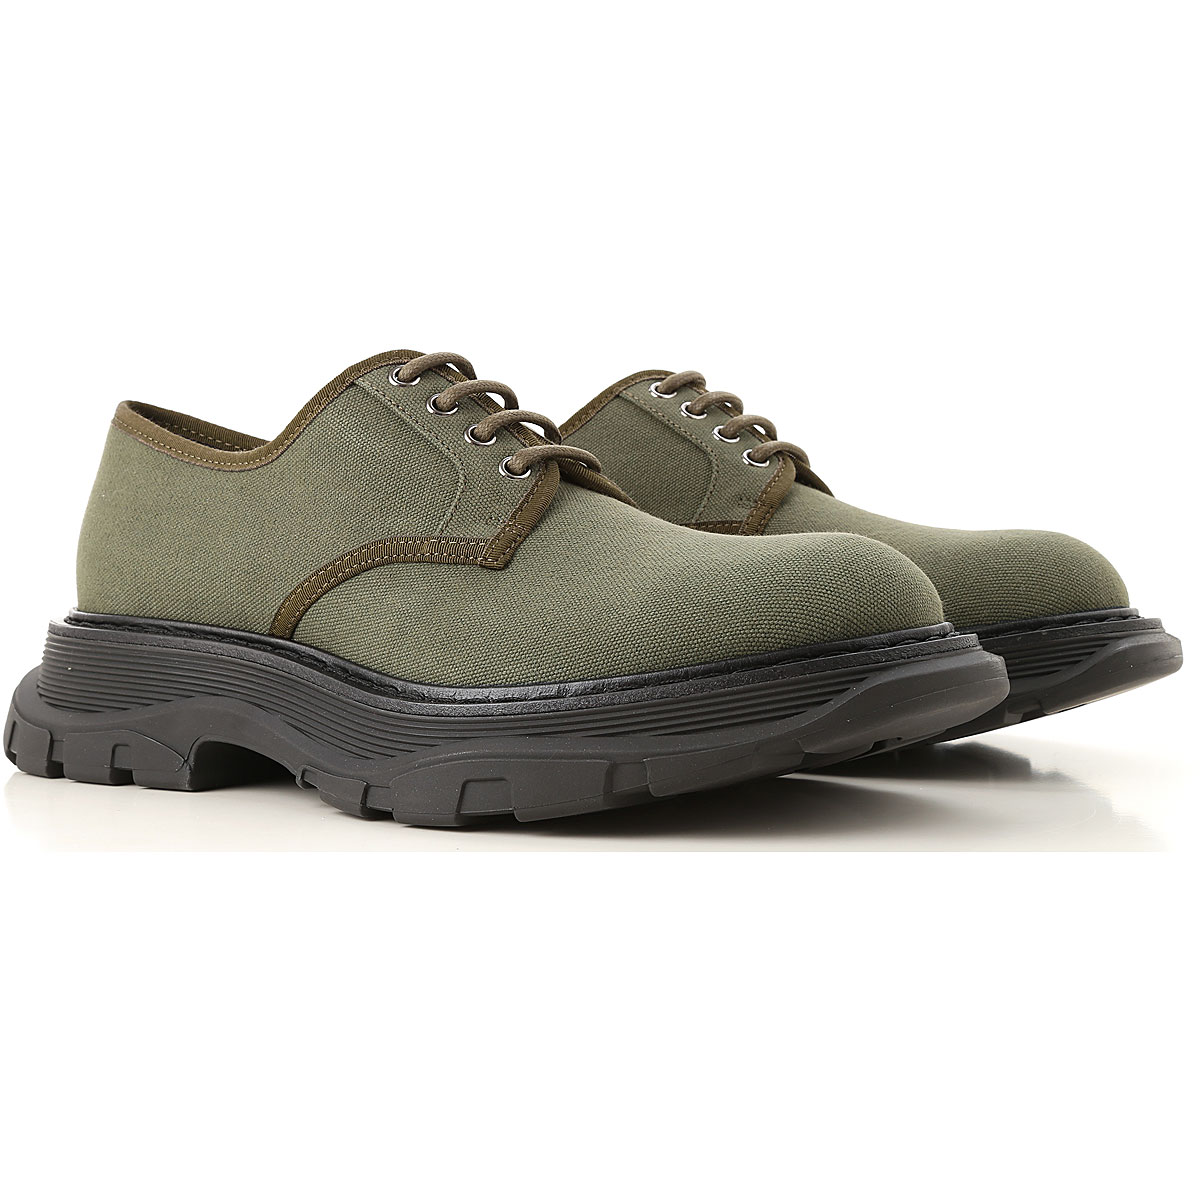 Alexander McQueen Lace Up Shoes for Men Oxfords Derbies and Brogues On Sale USA - GOOFASH